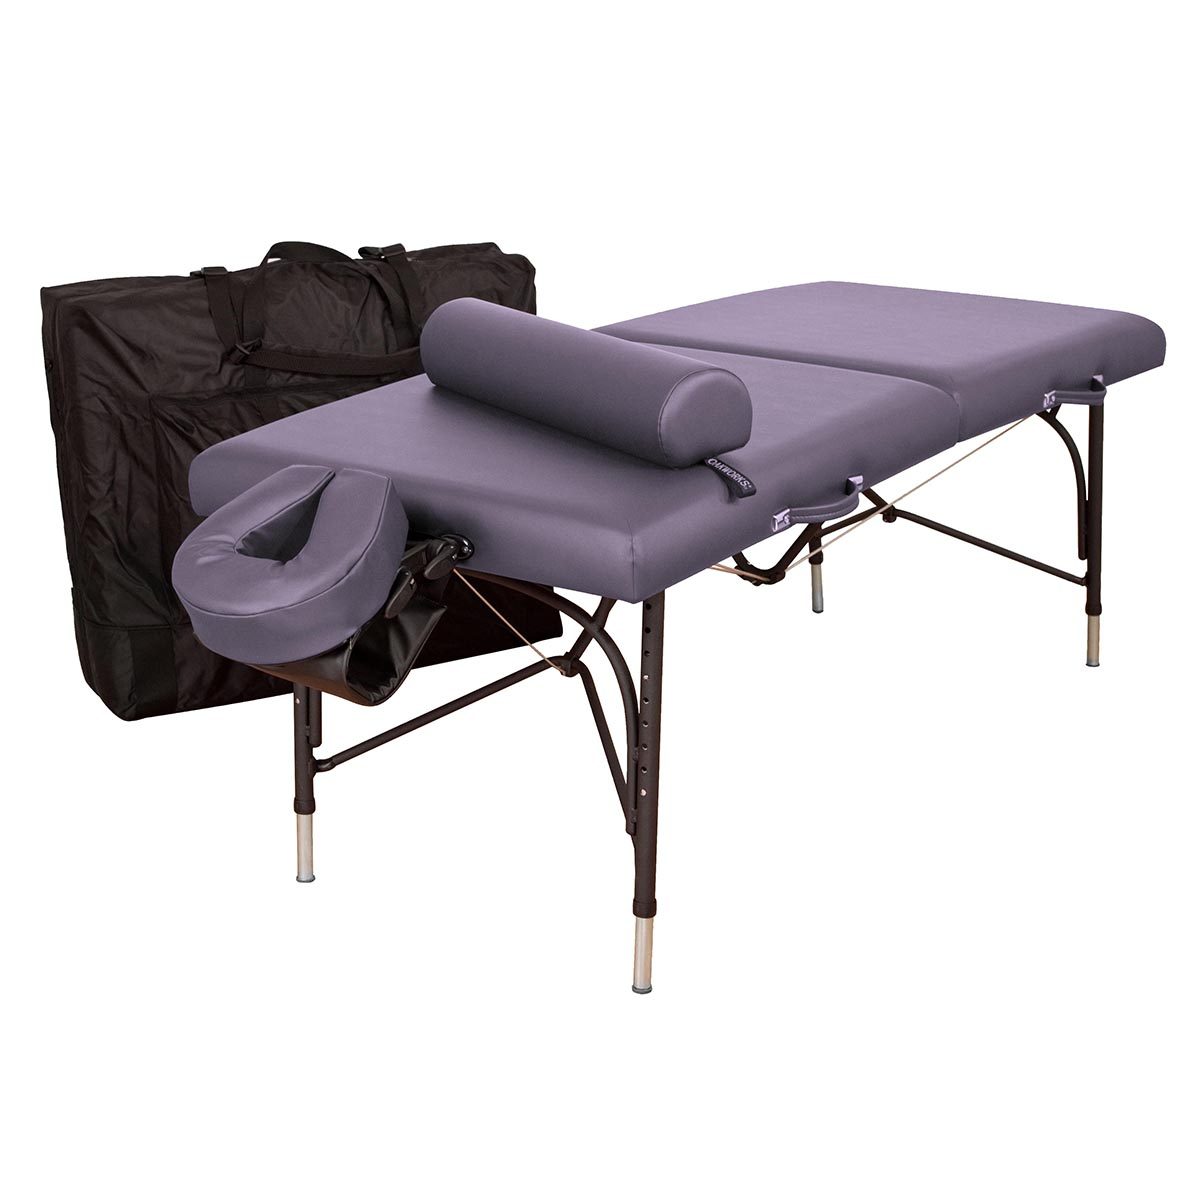 Oakworks wellspring professional table package massage for Massage table